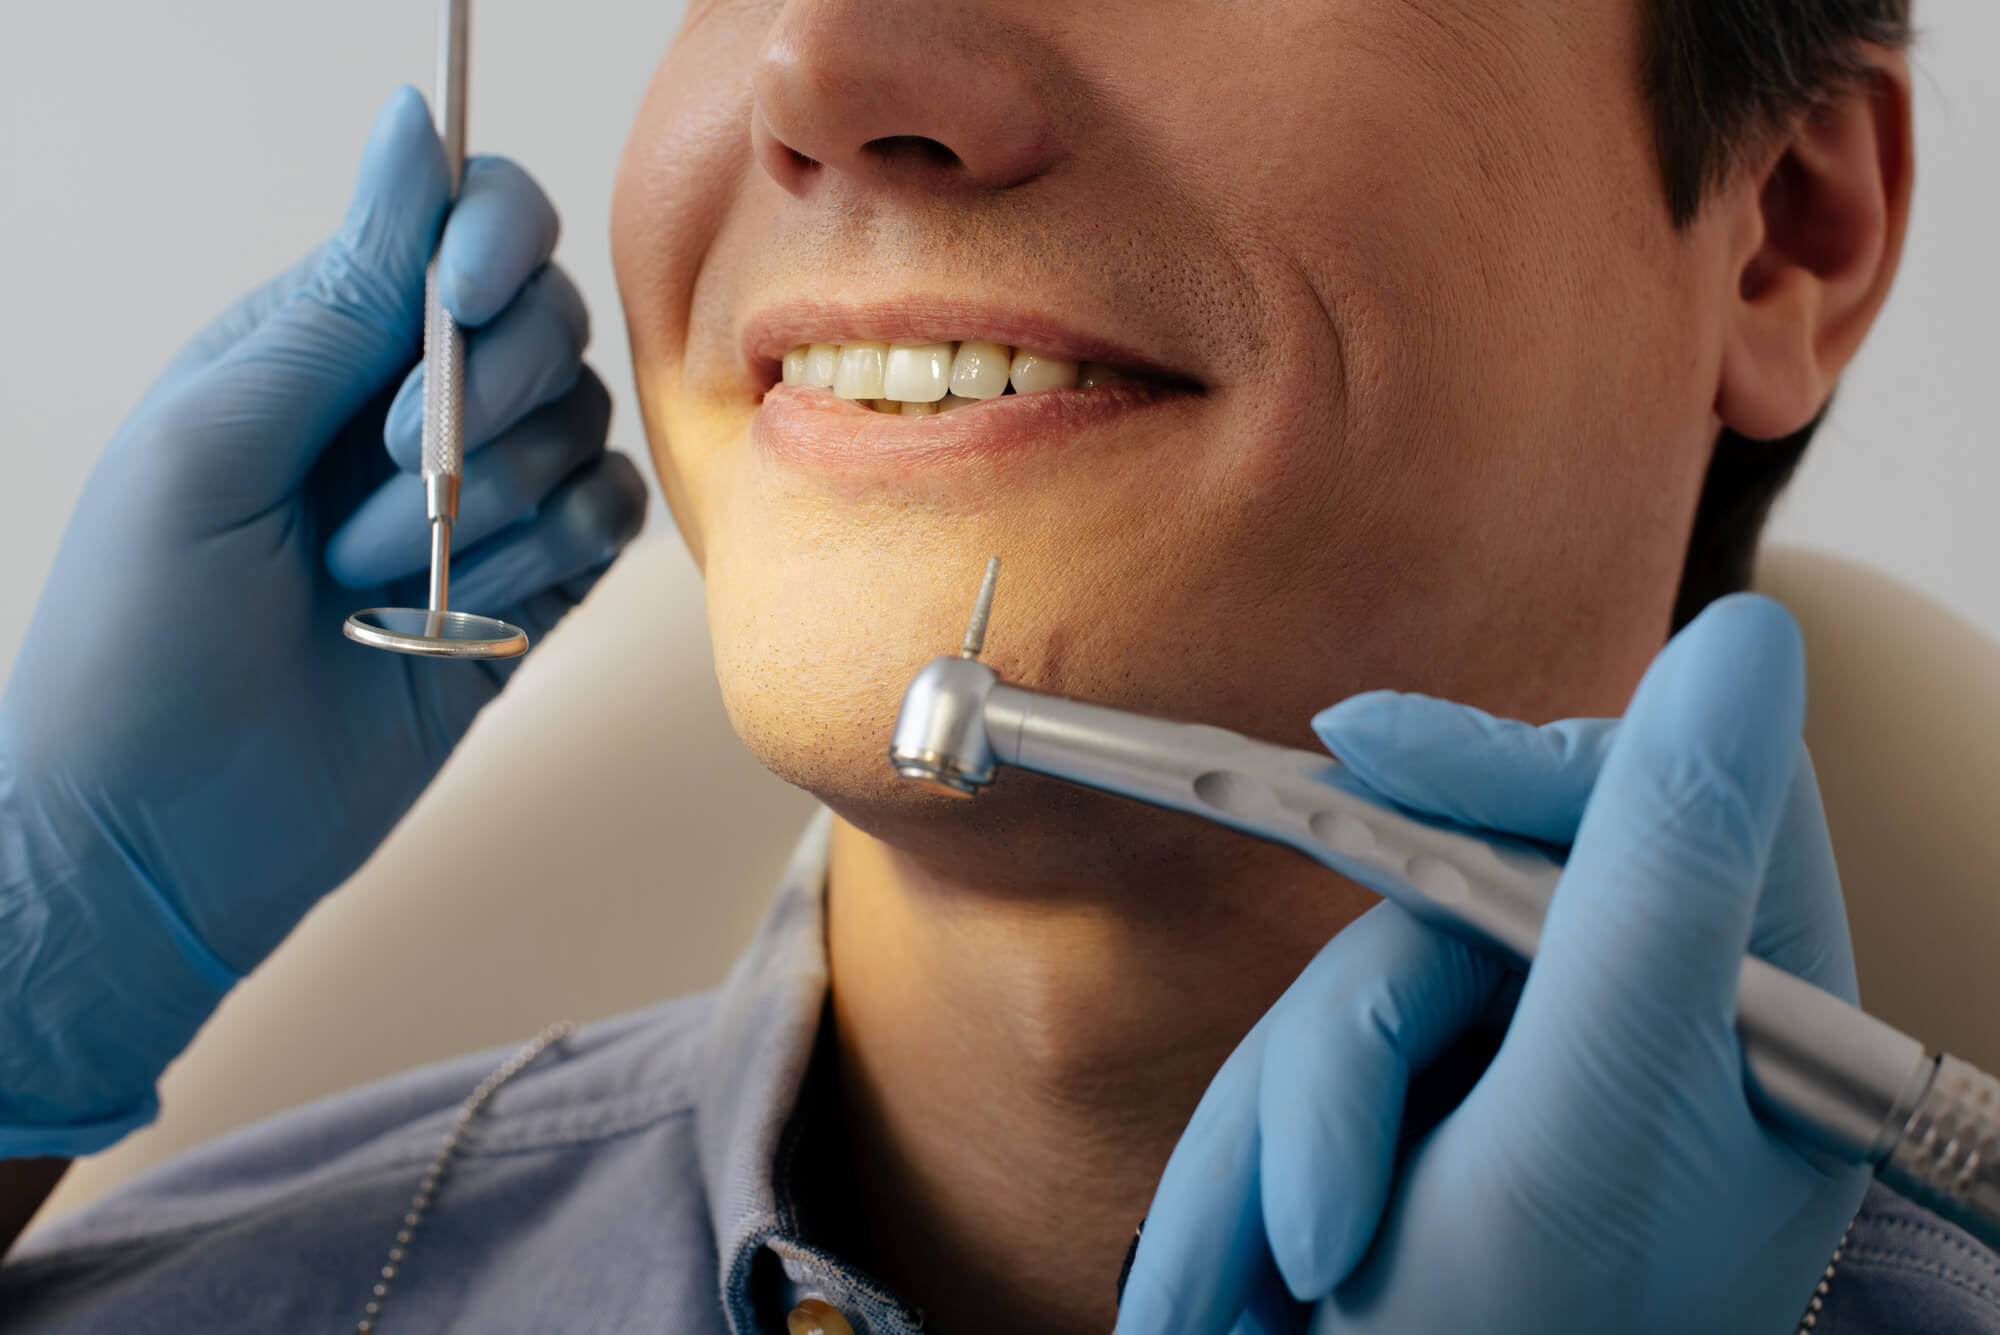 where is the best oral surgery pembroke pines fl?